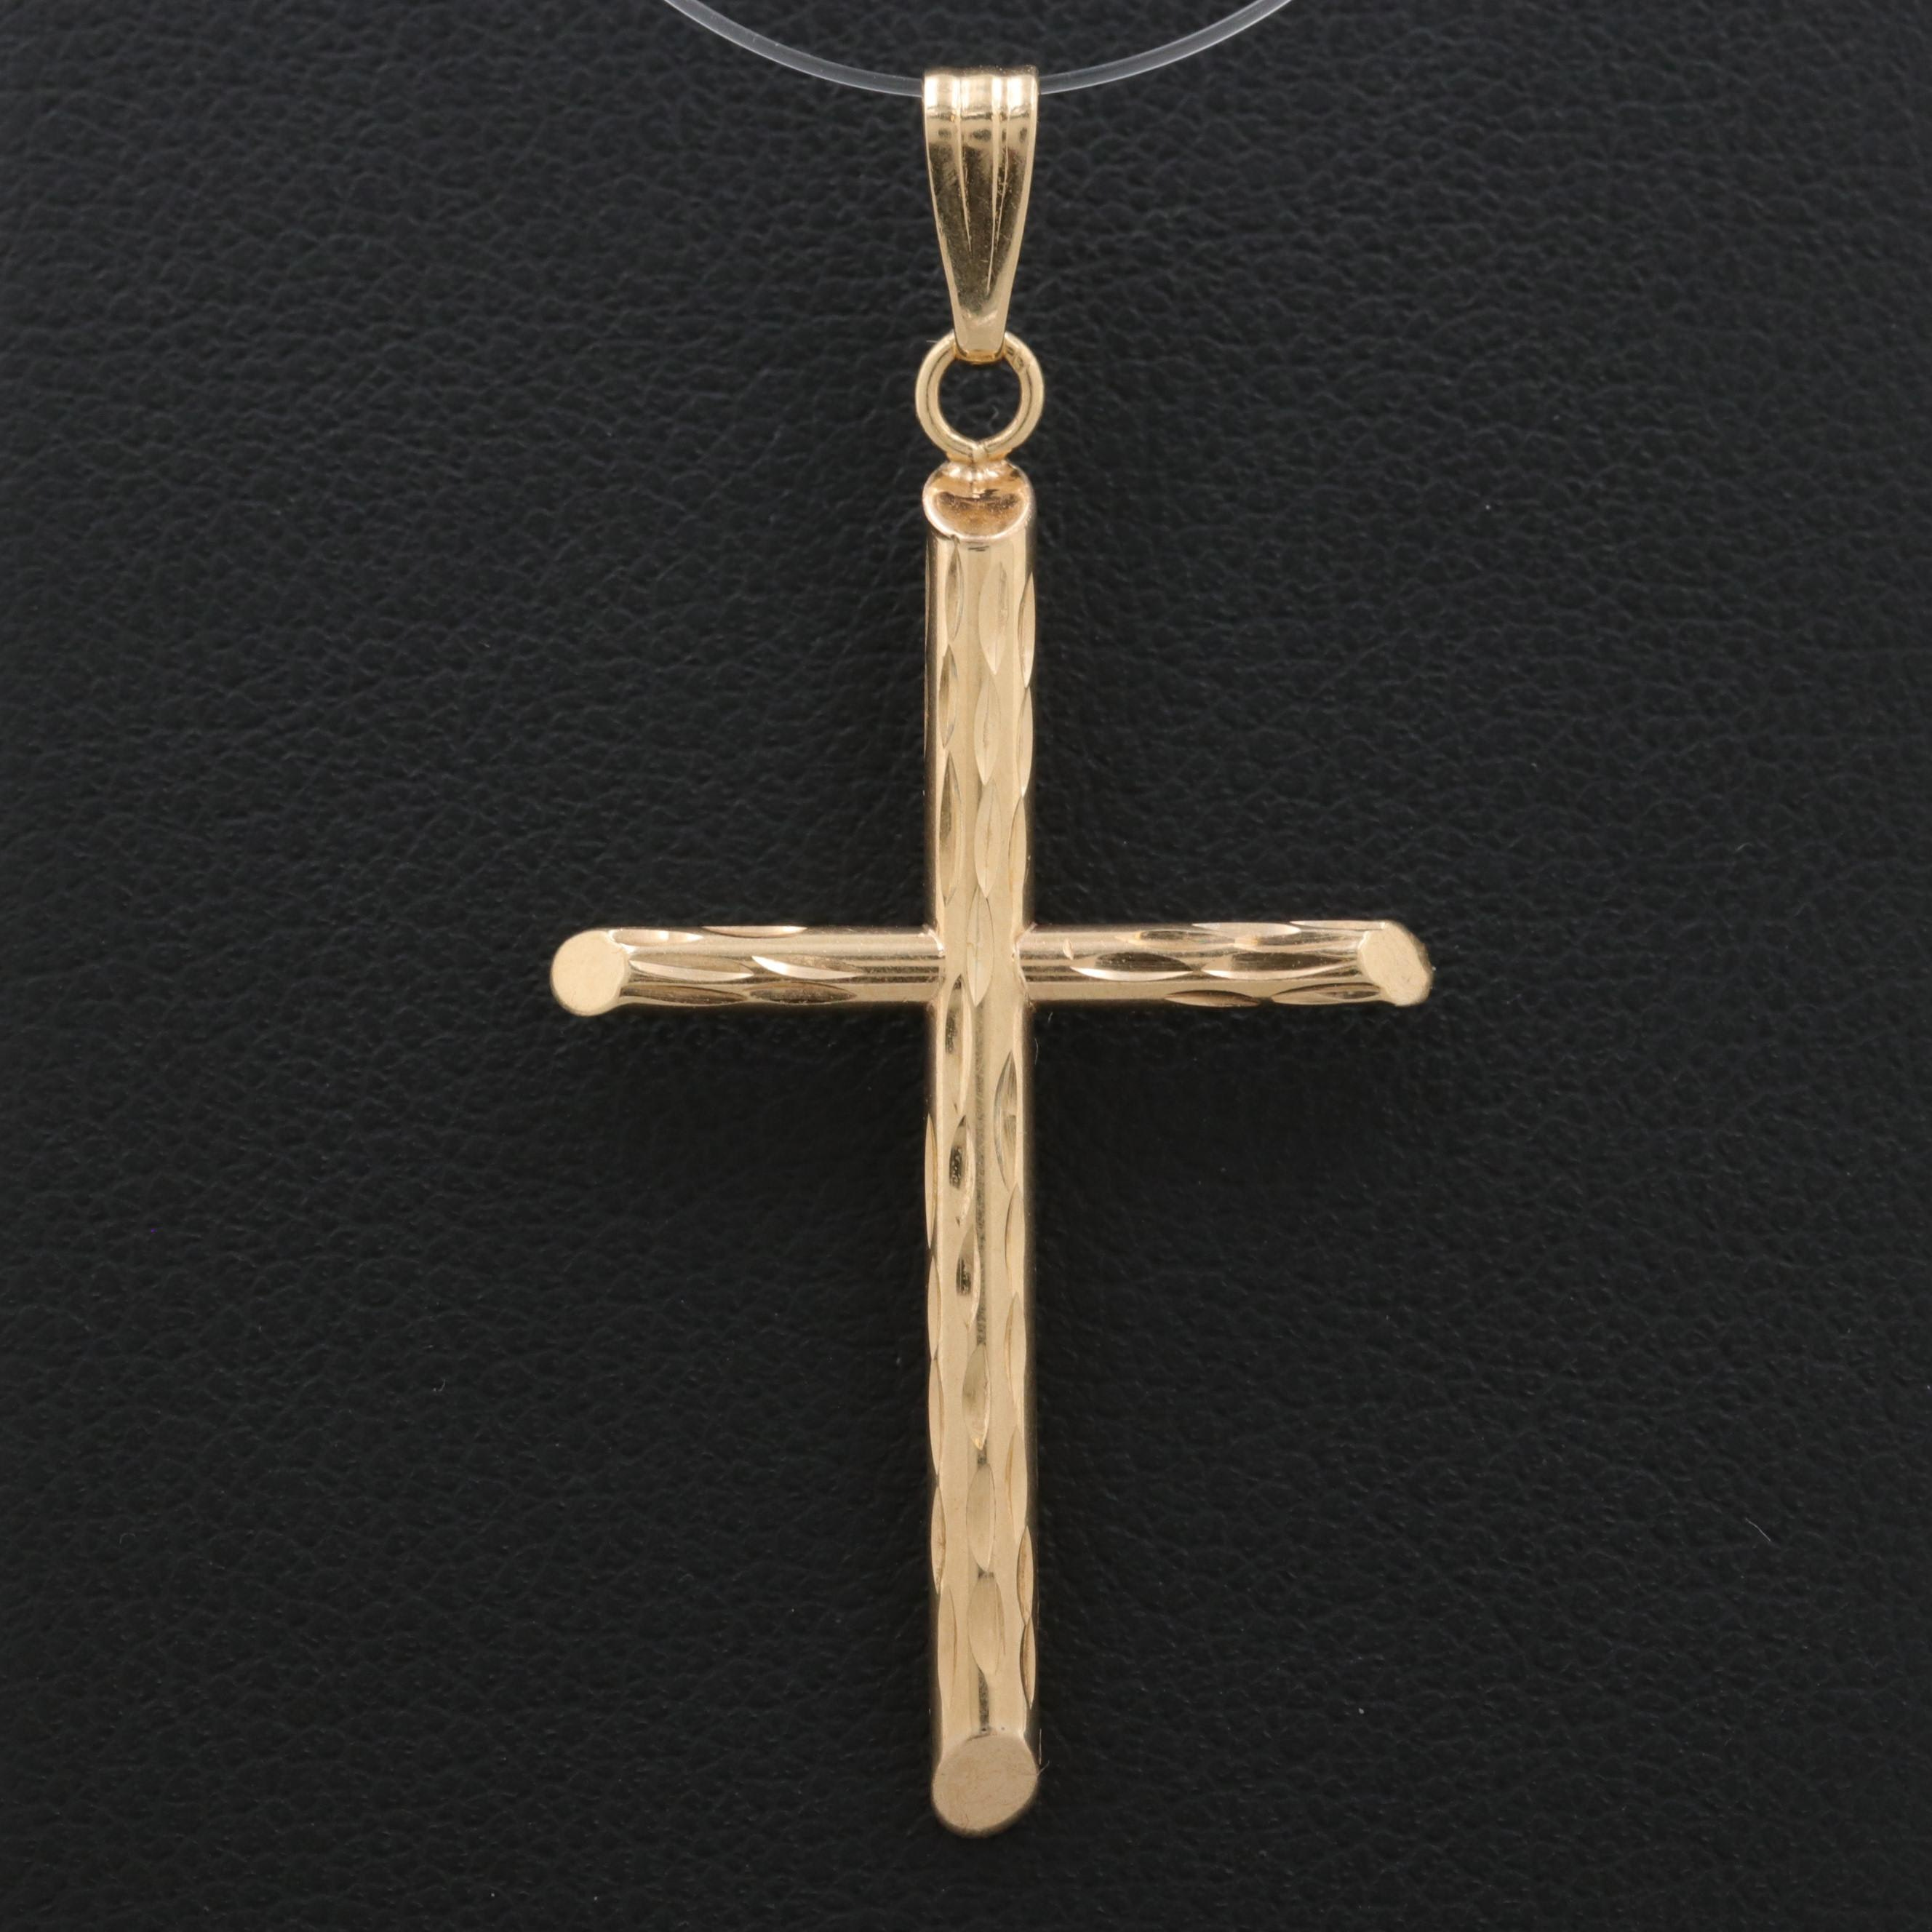 14K Yellow Gold Cross Pendant with Diamond Cut Finish